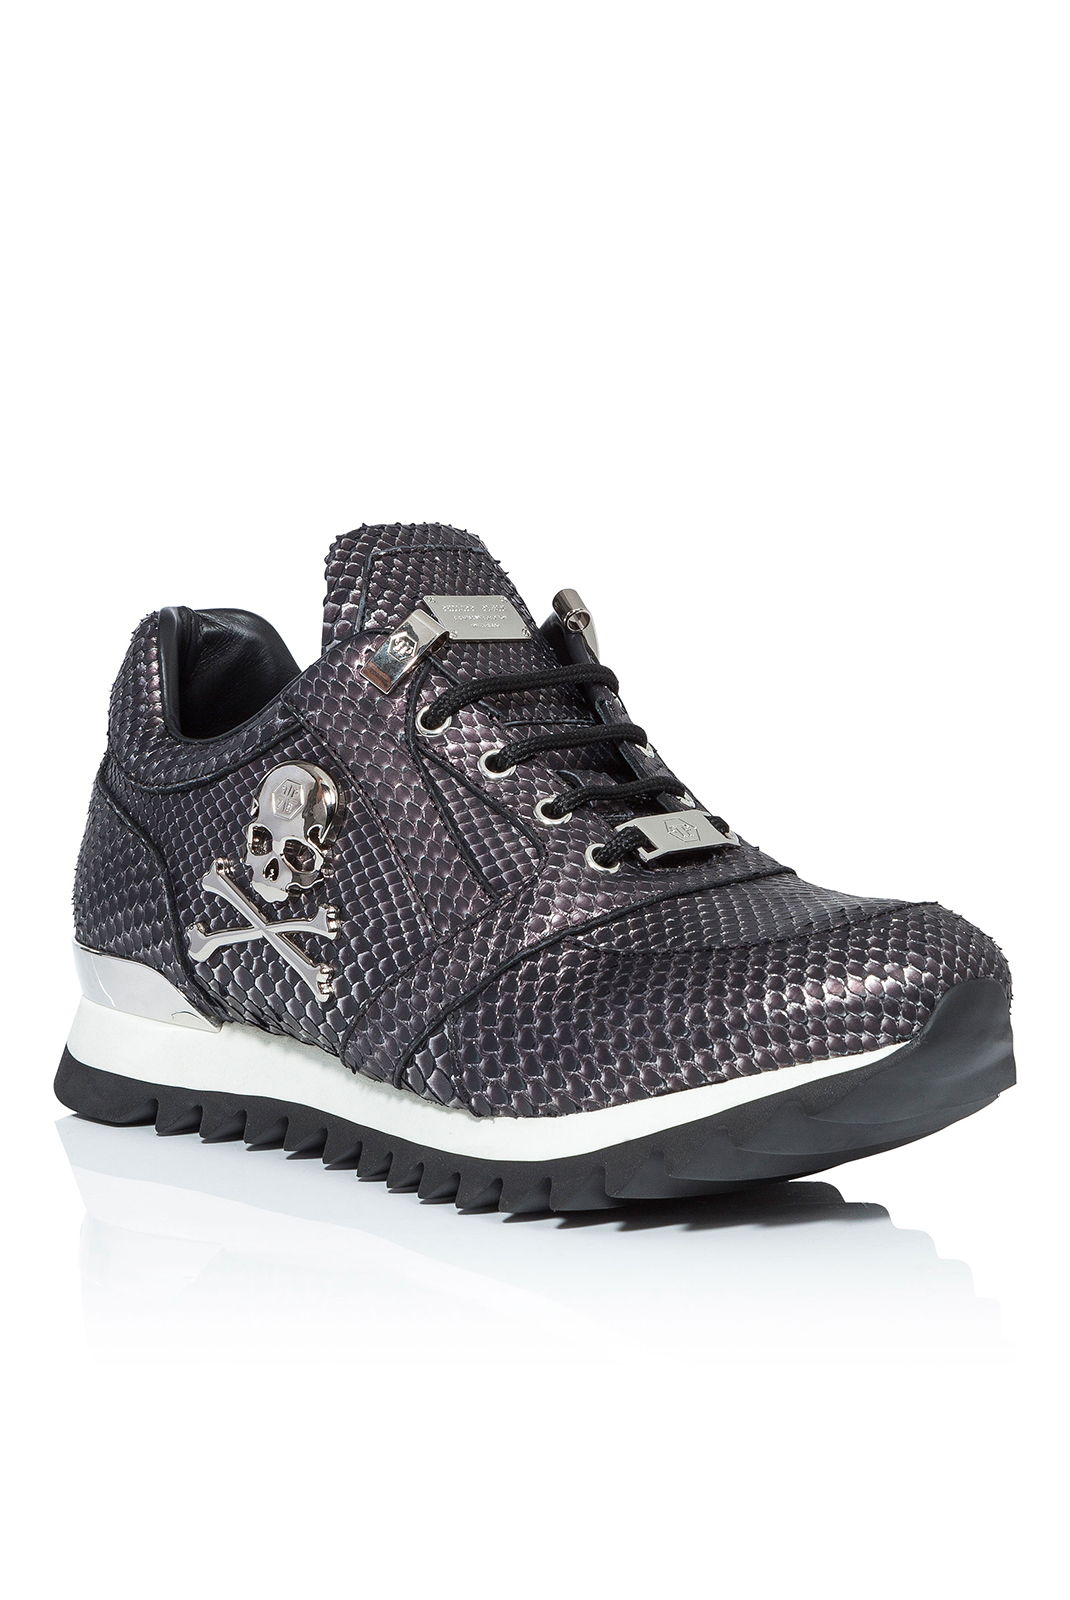 Baskets / Sport  Philipp plein MSC0728 SKULL BISCUIT SILVER/NICKEL